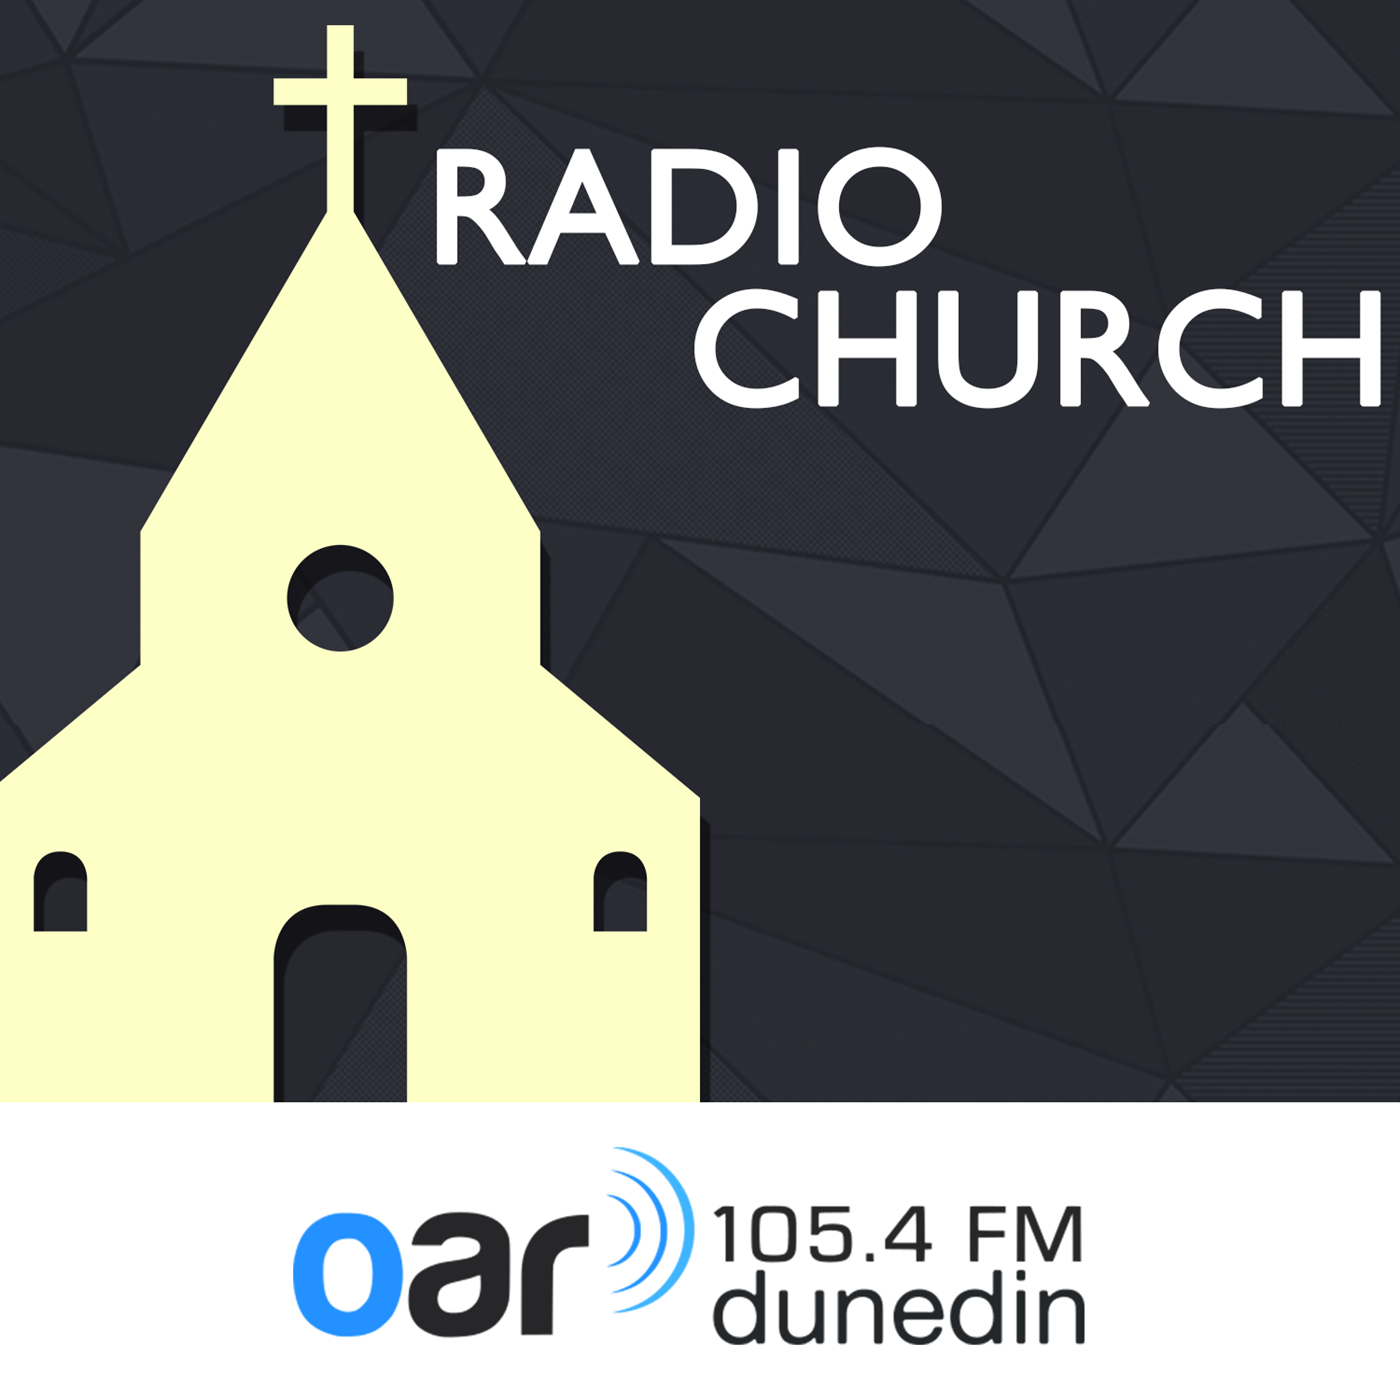 Radio Church - 05-04-2020 - Seventh Day Adventist Dunedin